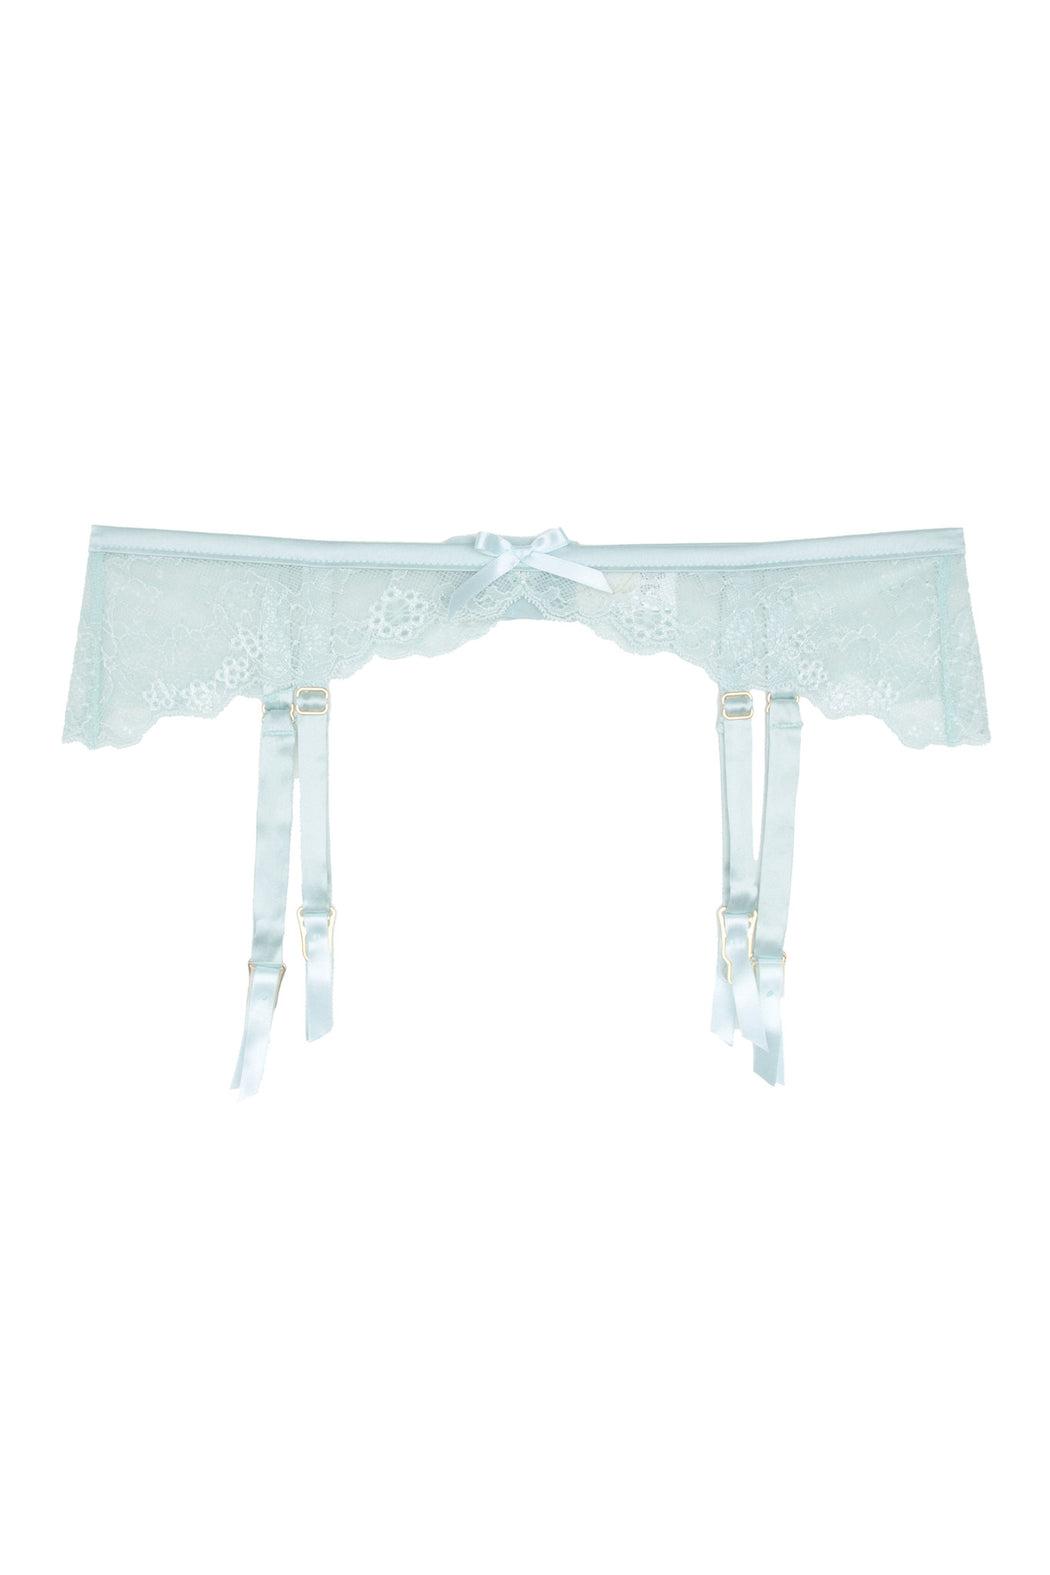 Rosetti Gardens silk and lace blue suspender belt by Lucile workingirls lingerie